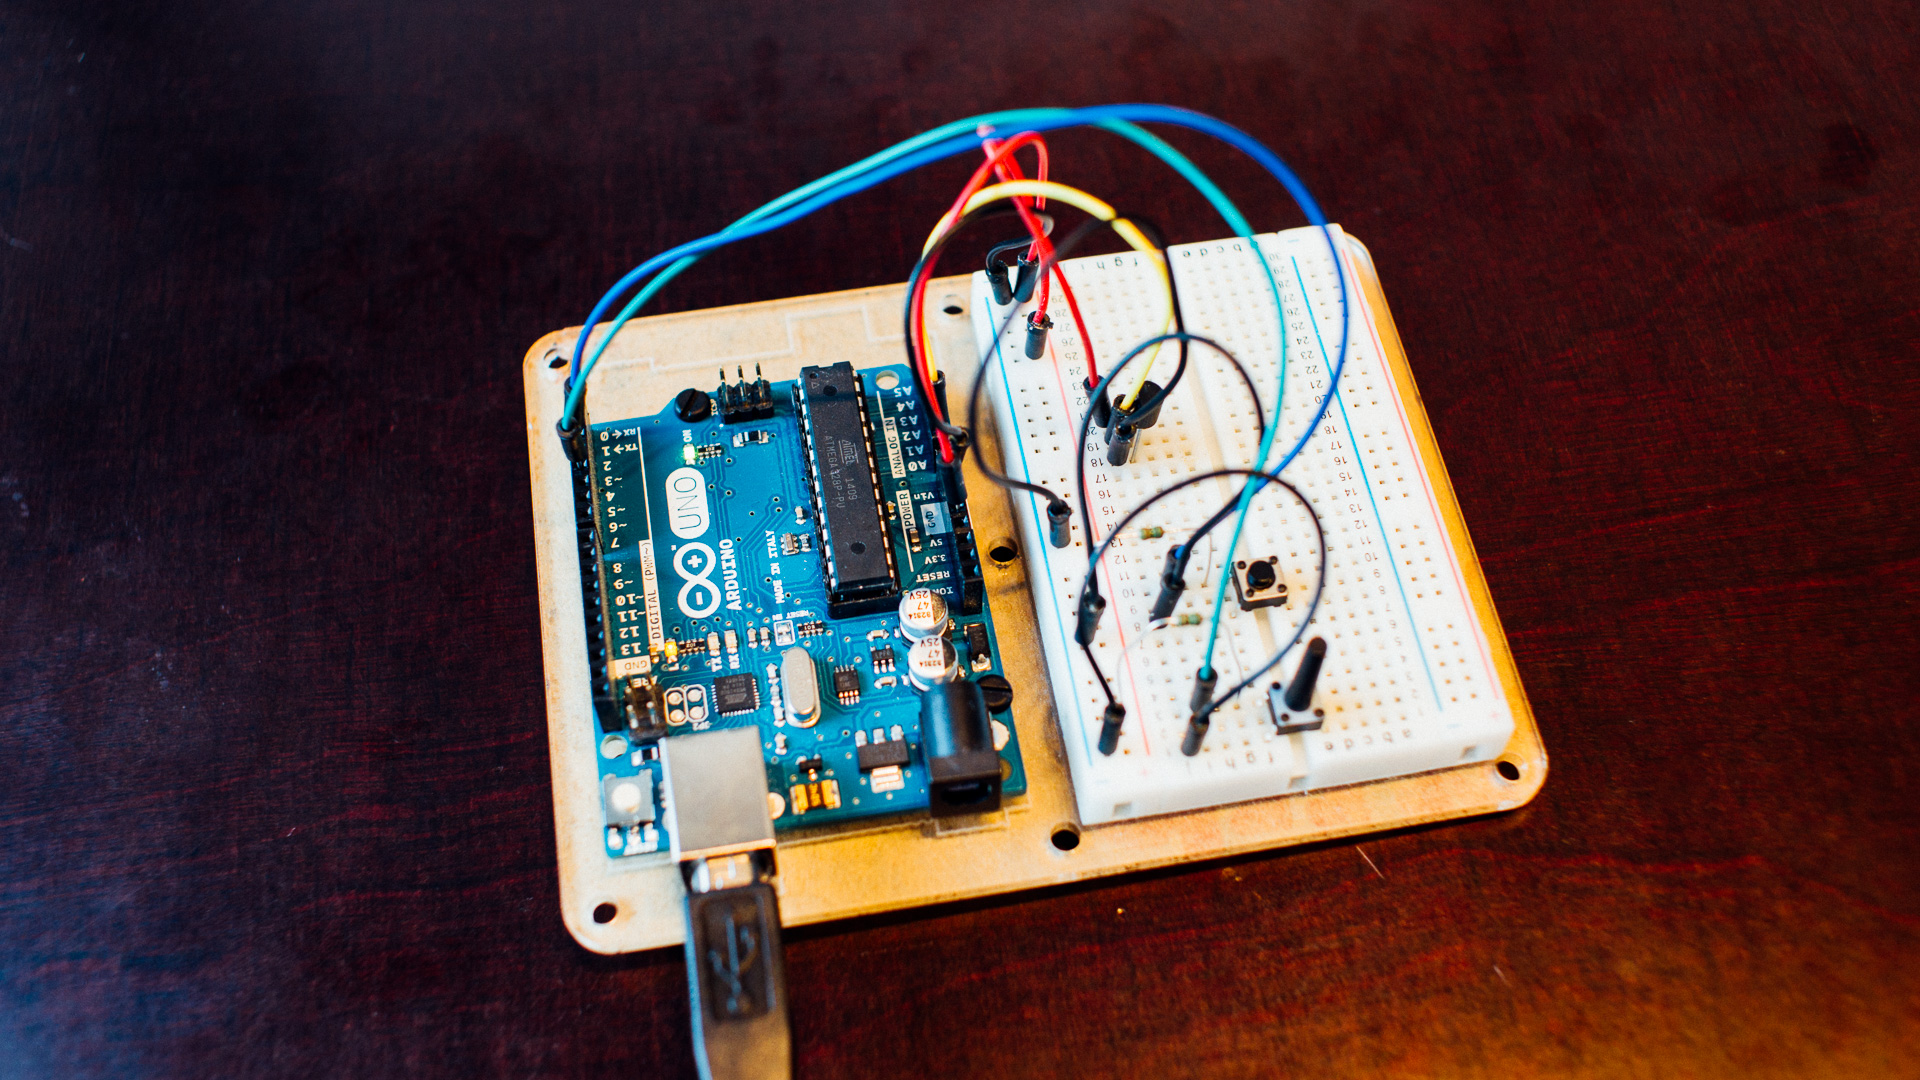 Using EEPROM to Store Data on the Arduino